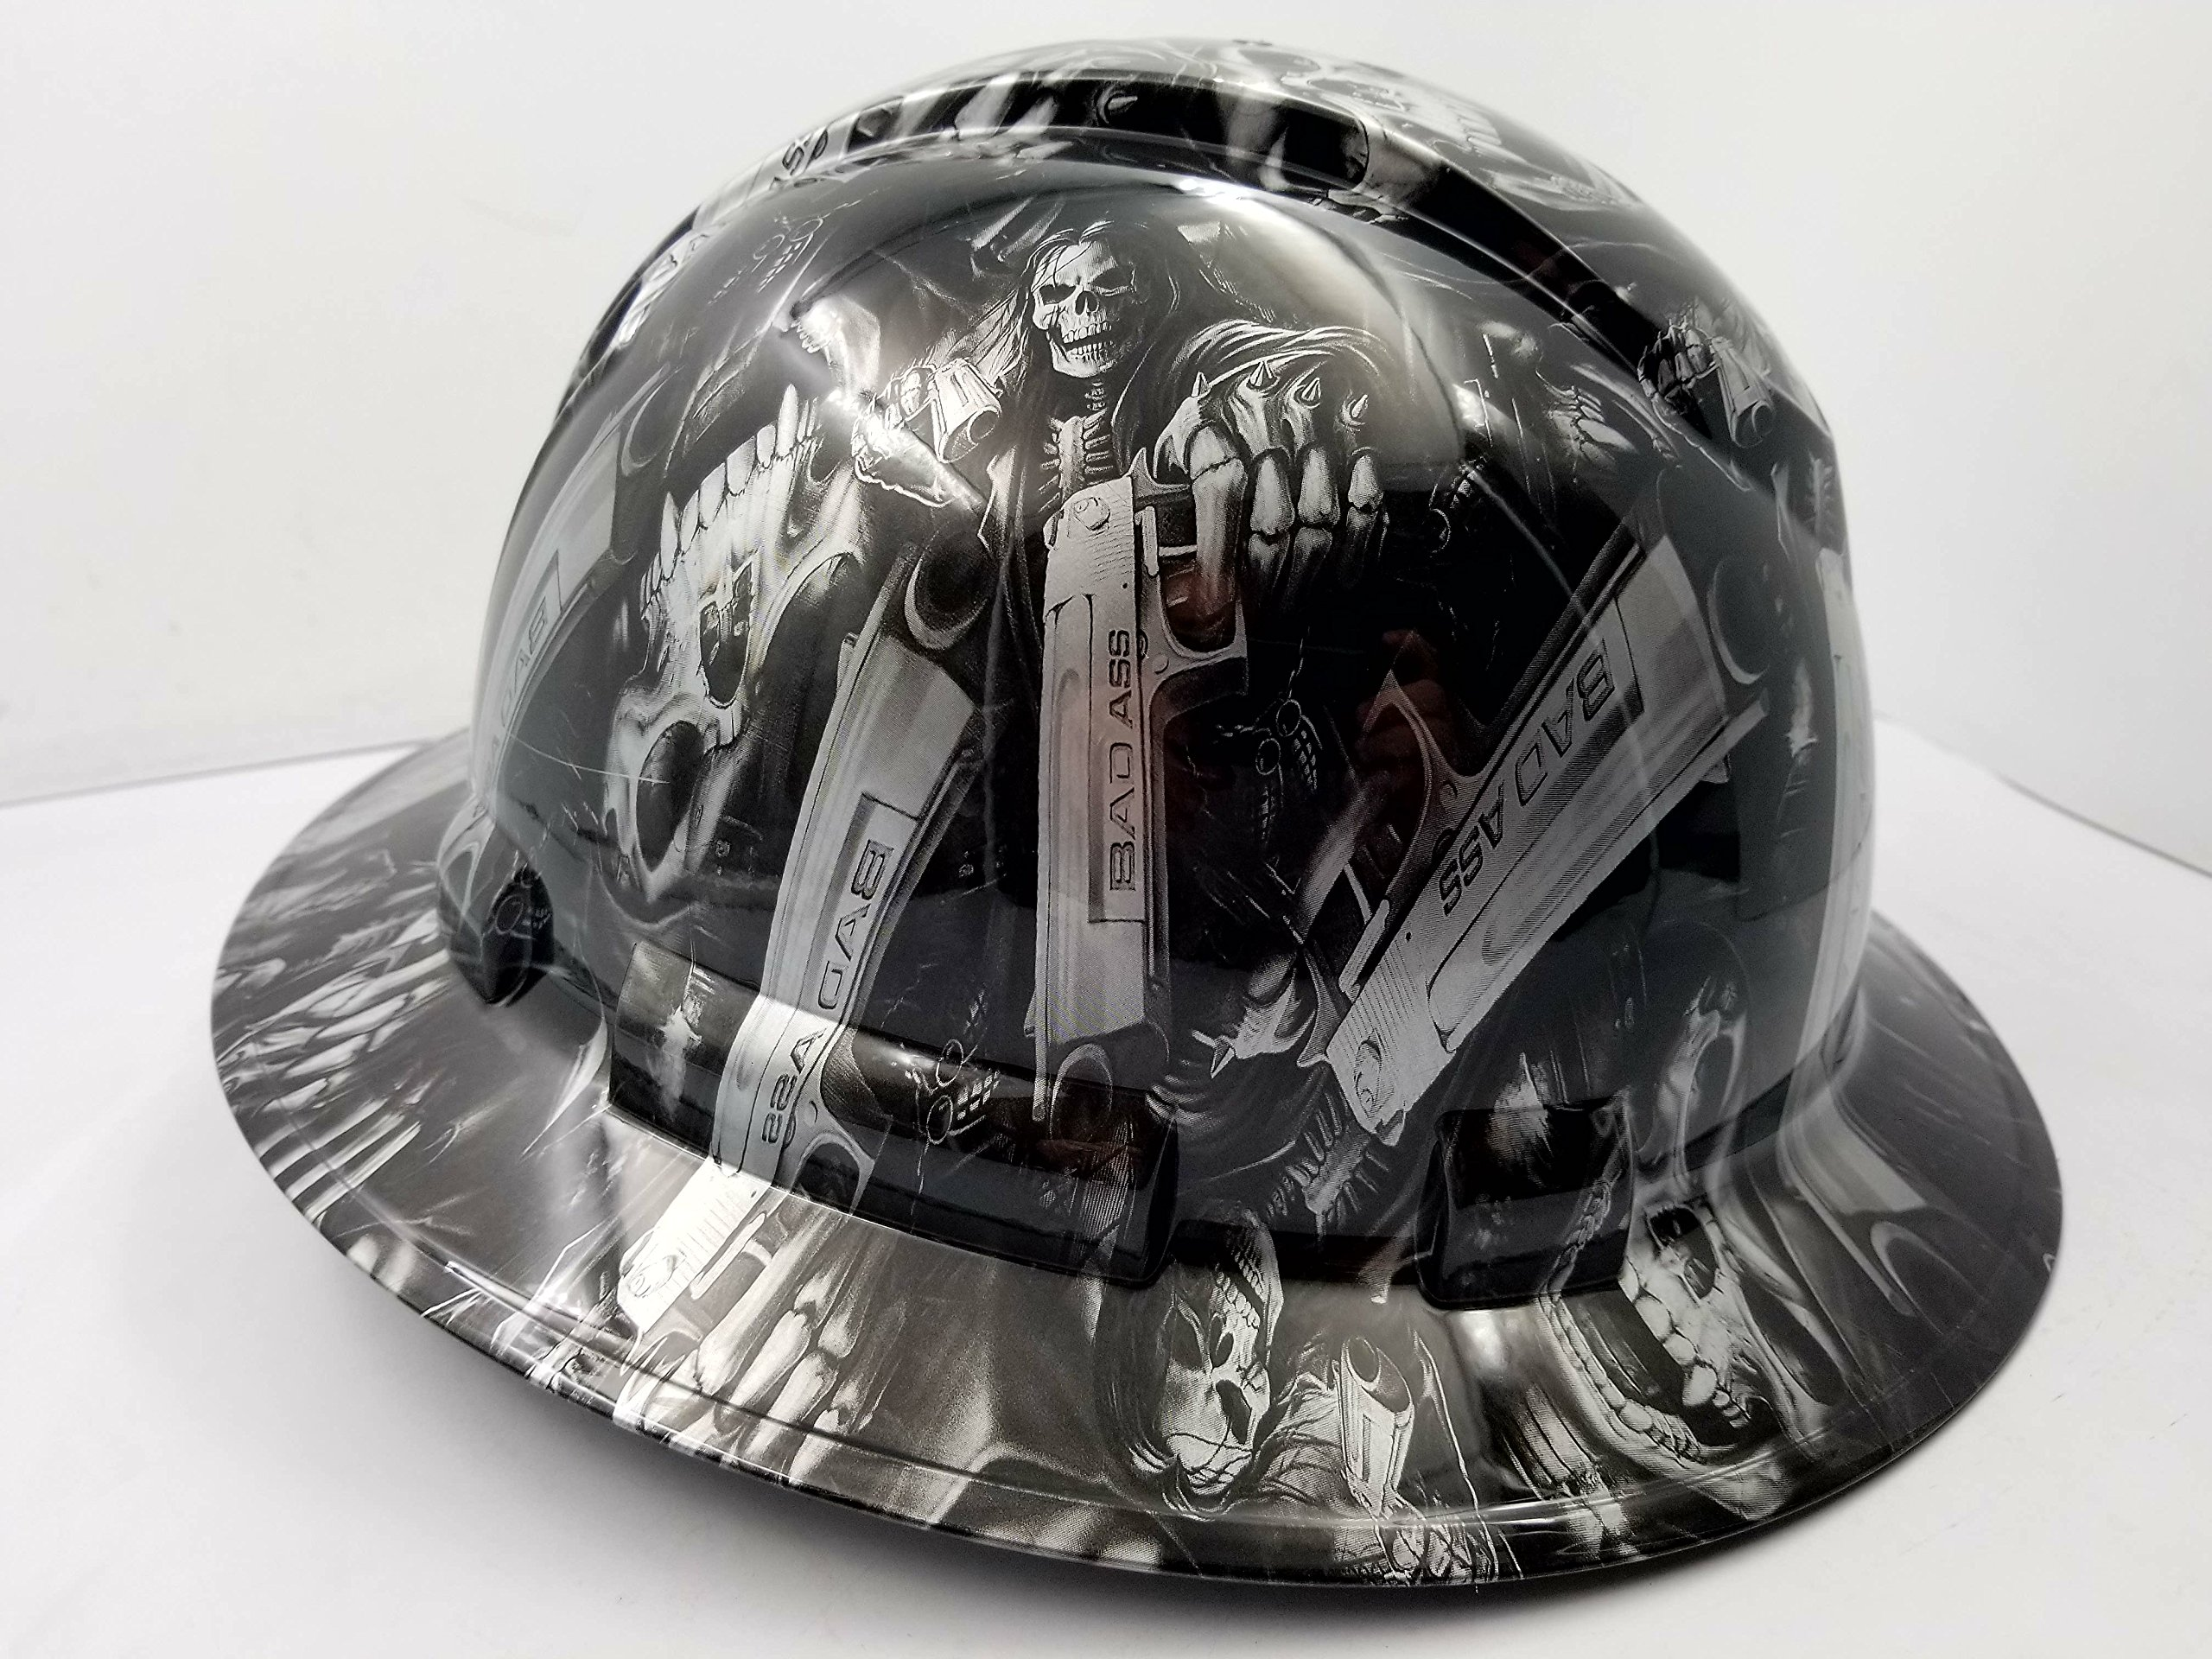 Wet Works Imaging Customized Pyramex Full Brim GRIM REAPER SKULL SHOOTER HARD HAT With Ratcheting Suspension CUSTOM LIDS CRAZY SICK CONSTRUCTION PPE by Wet Works Imaging (Image #3)